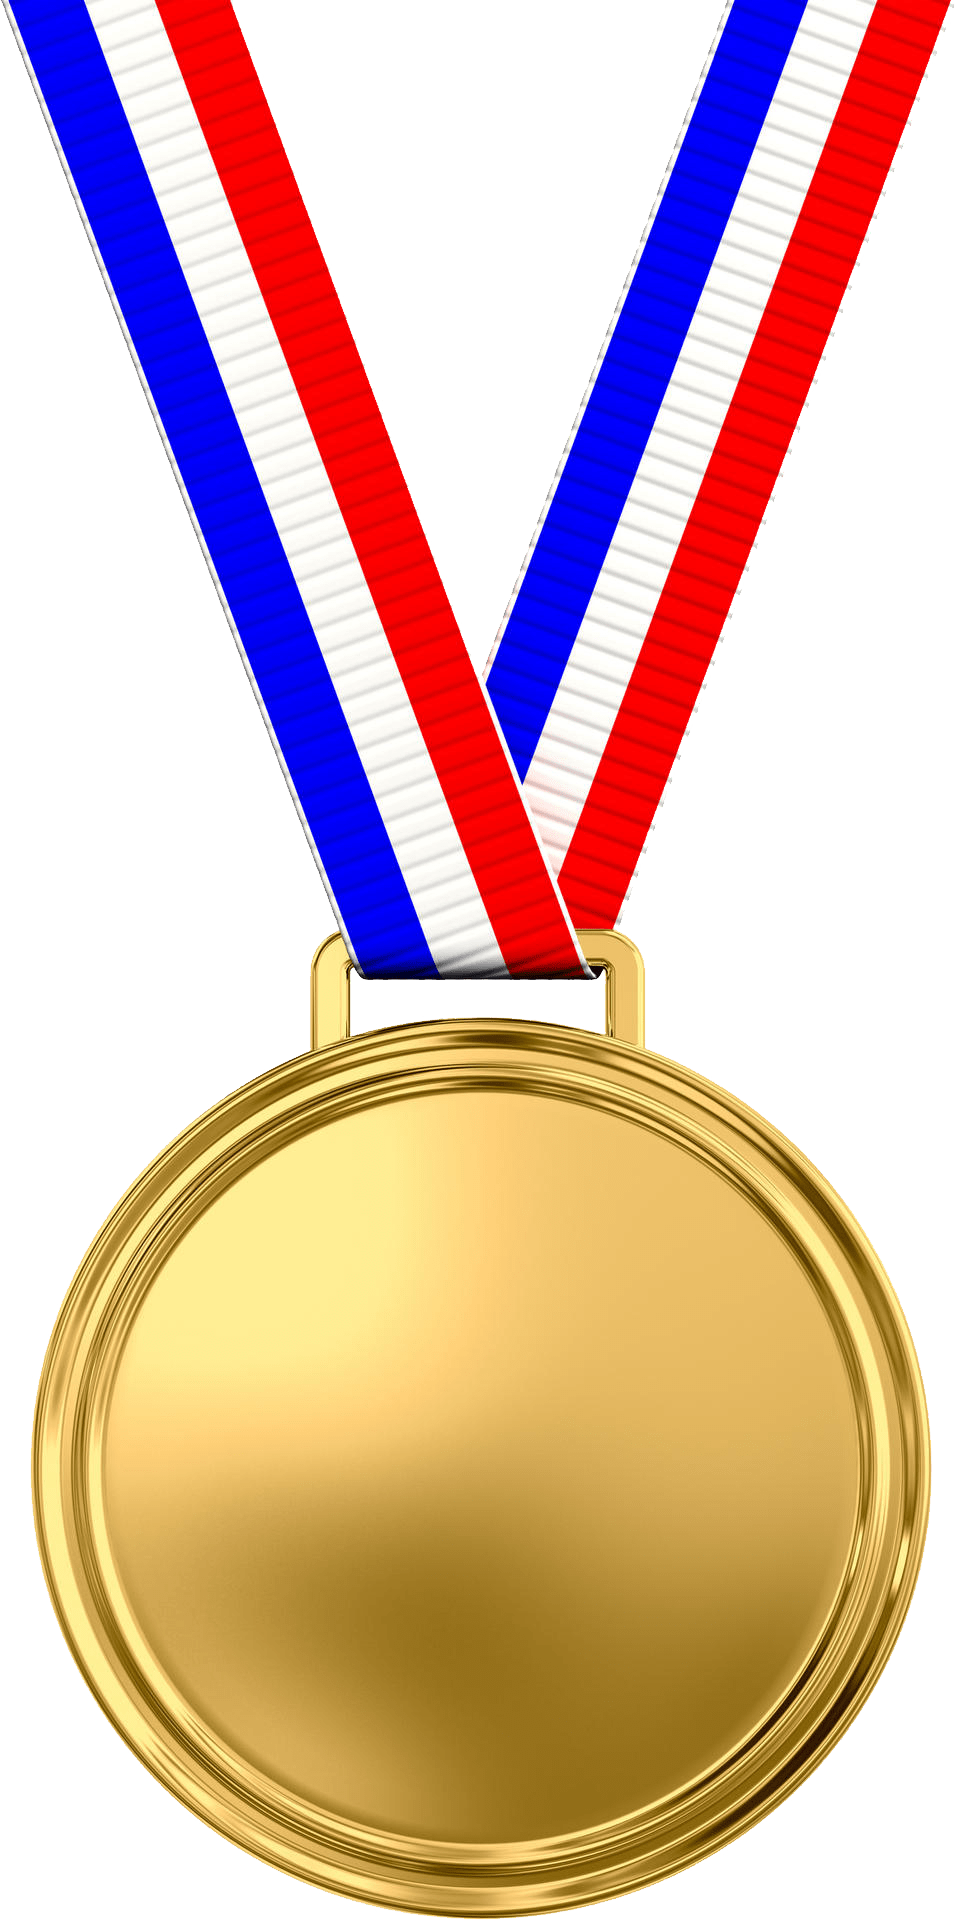 Olympic at getdrawings com. Good clipart medal certificate